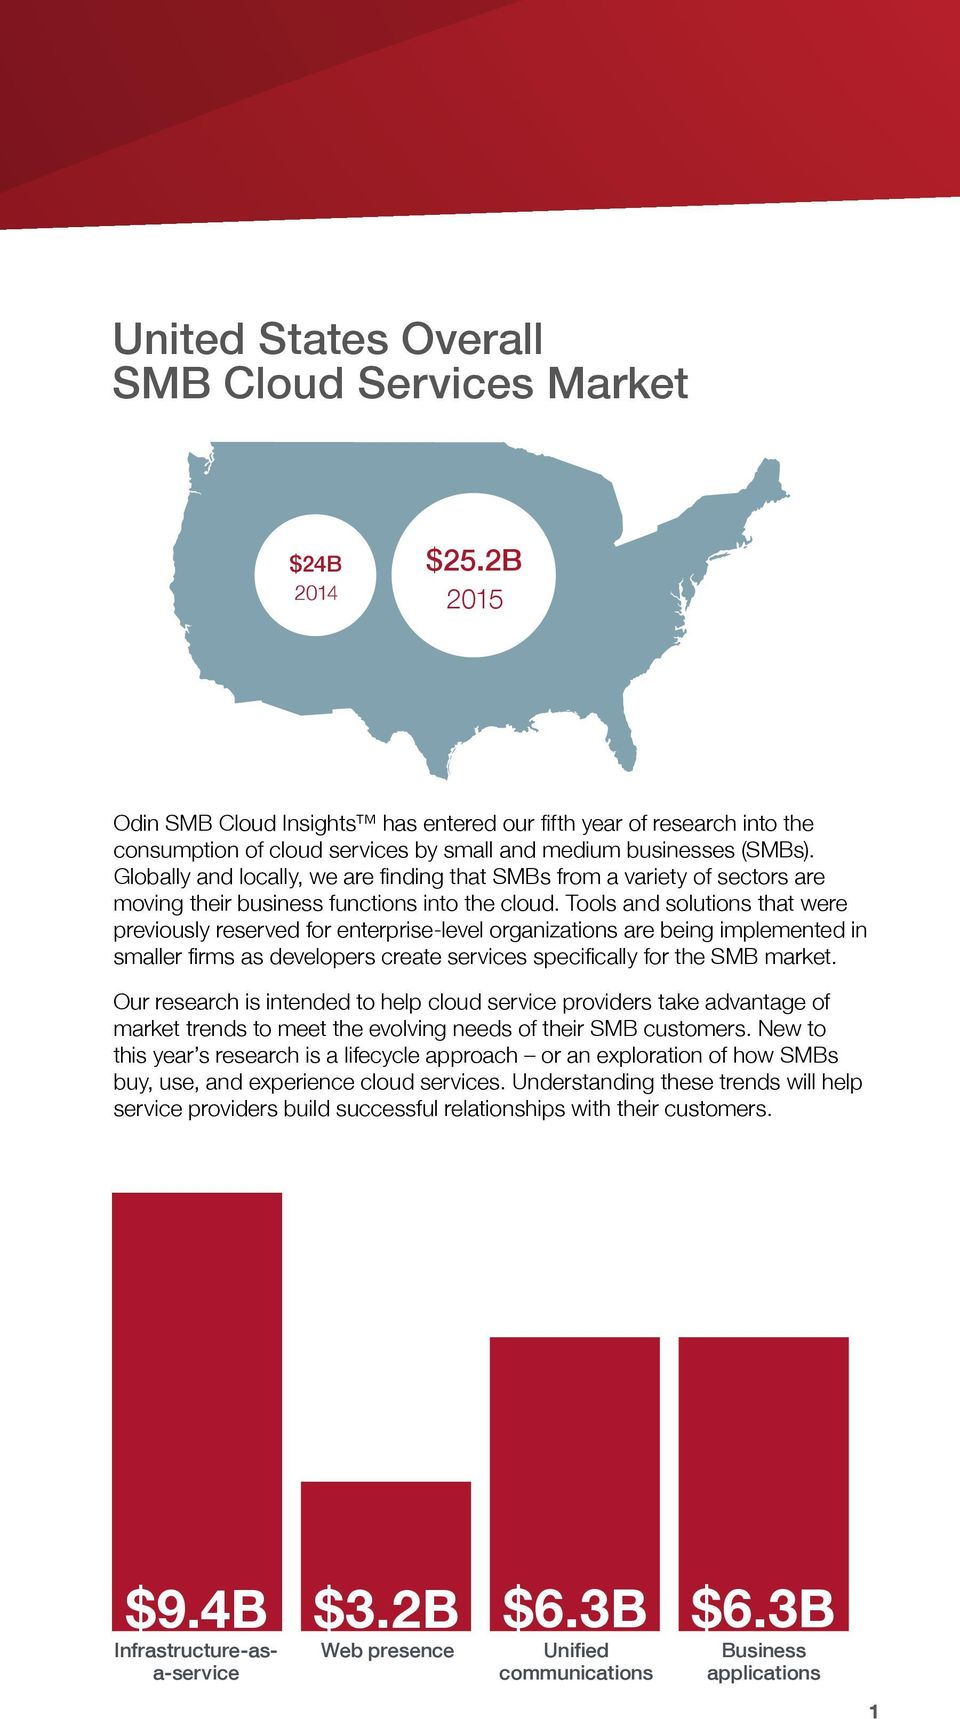 Globally and locally, we are finding that SMBs from a variety of sectors are moving their business functions into the cloud.